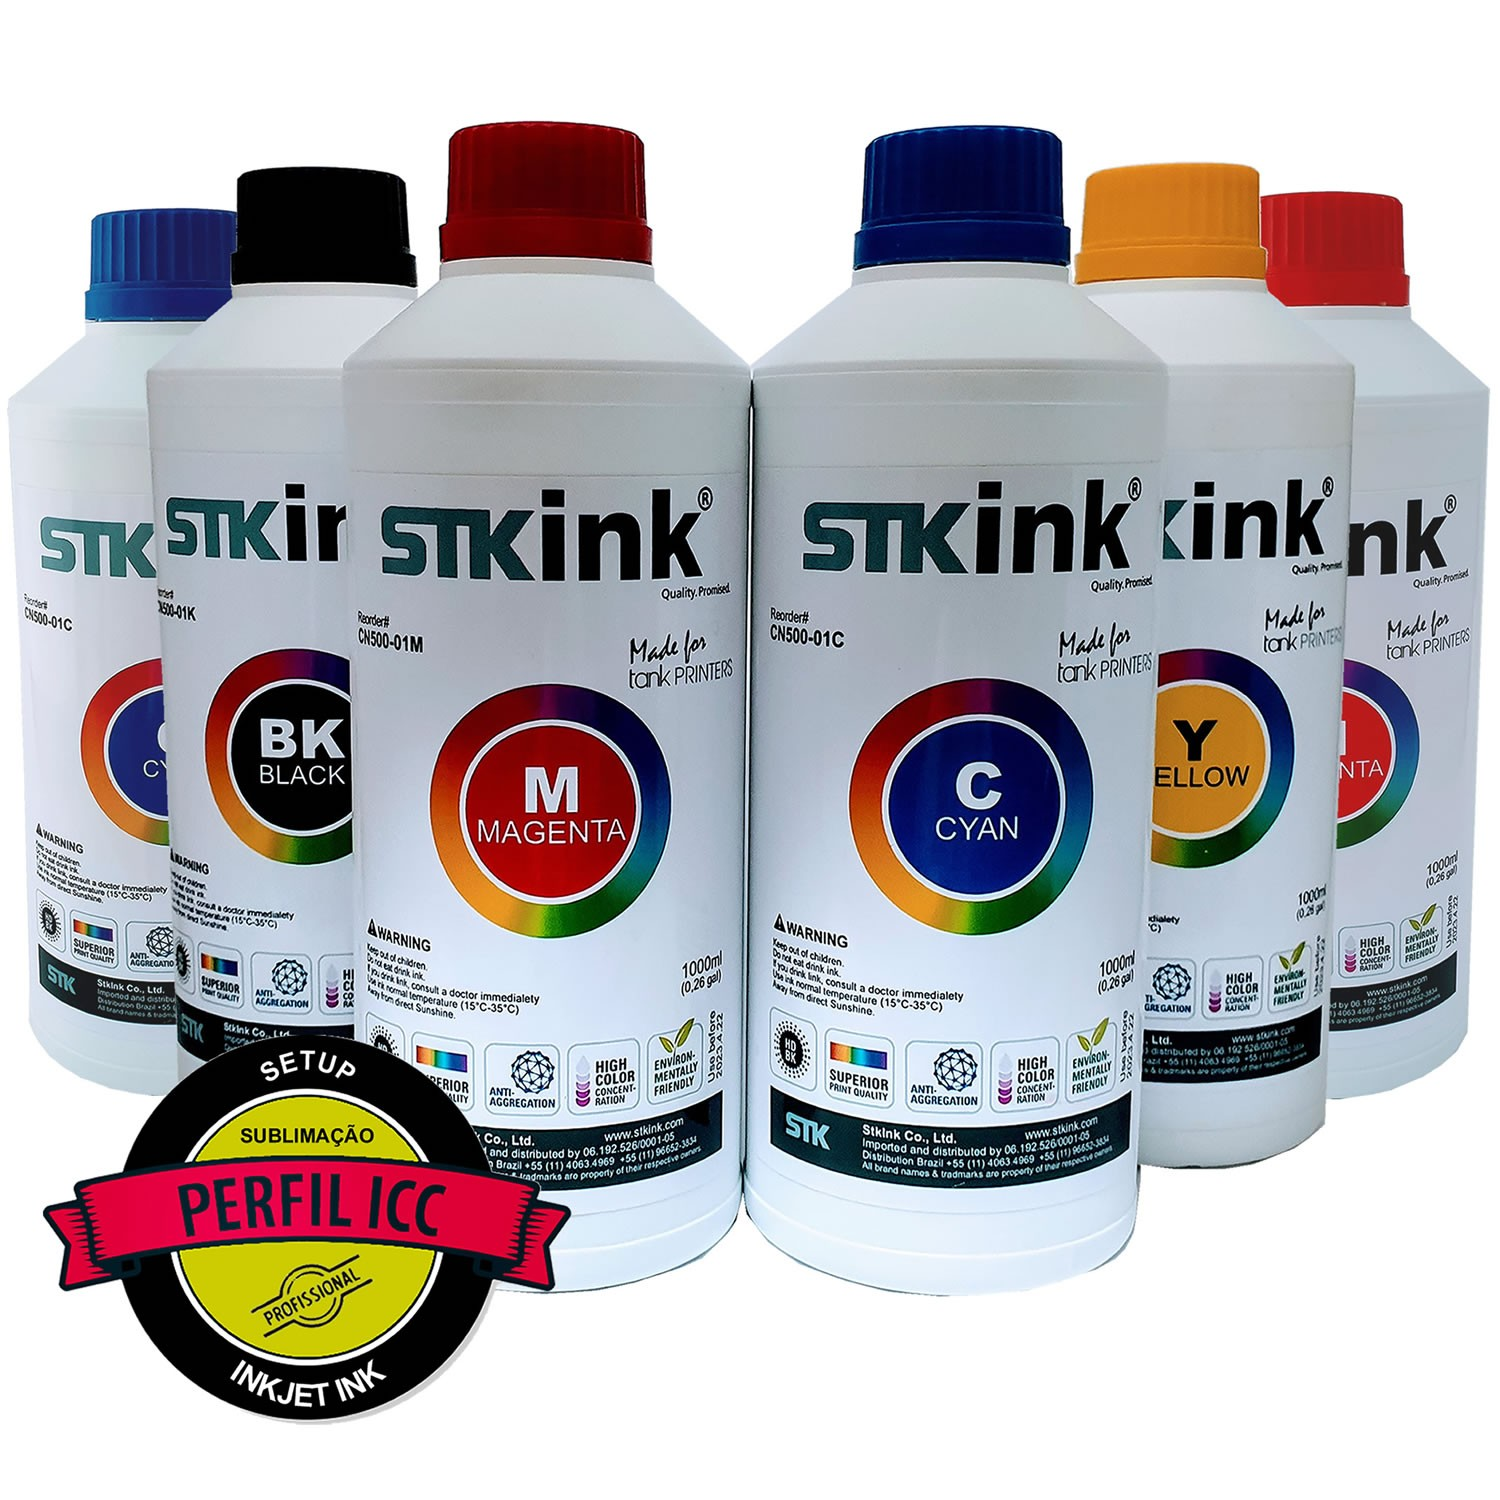 6 x 250ml Tinta Sublimática Digital STK Kit 6 Cores com perfil ICC